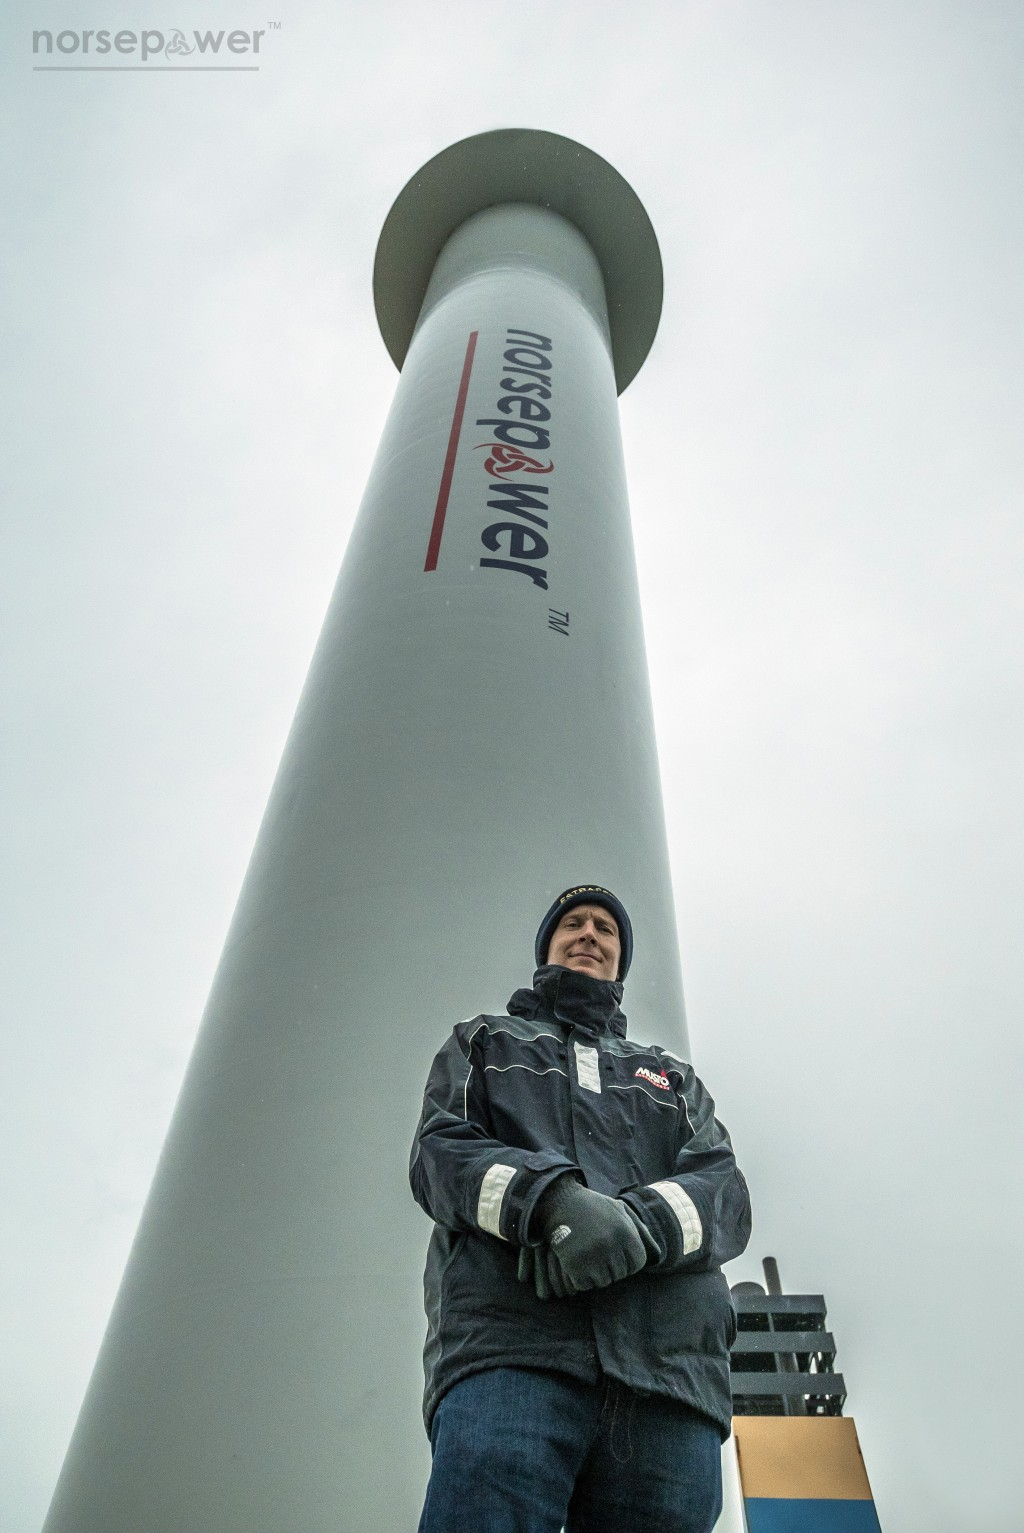 Tuomas Risk, CEO of Finnish startup company Norsepower, poses Nov. 2016, in the North Sea, in front of one of his company's rotor sails, one of the ne